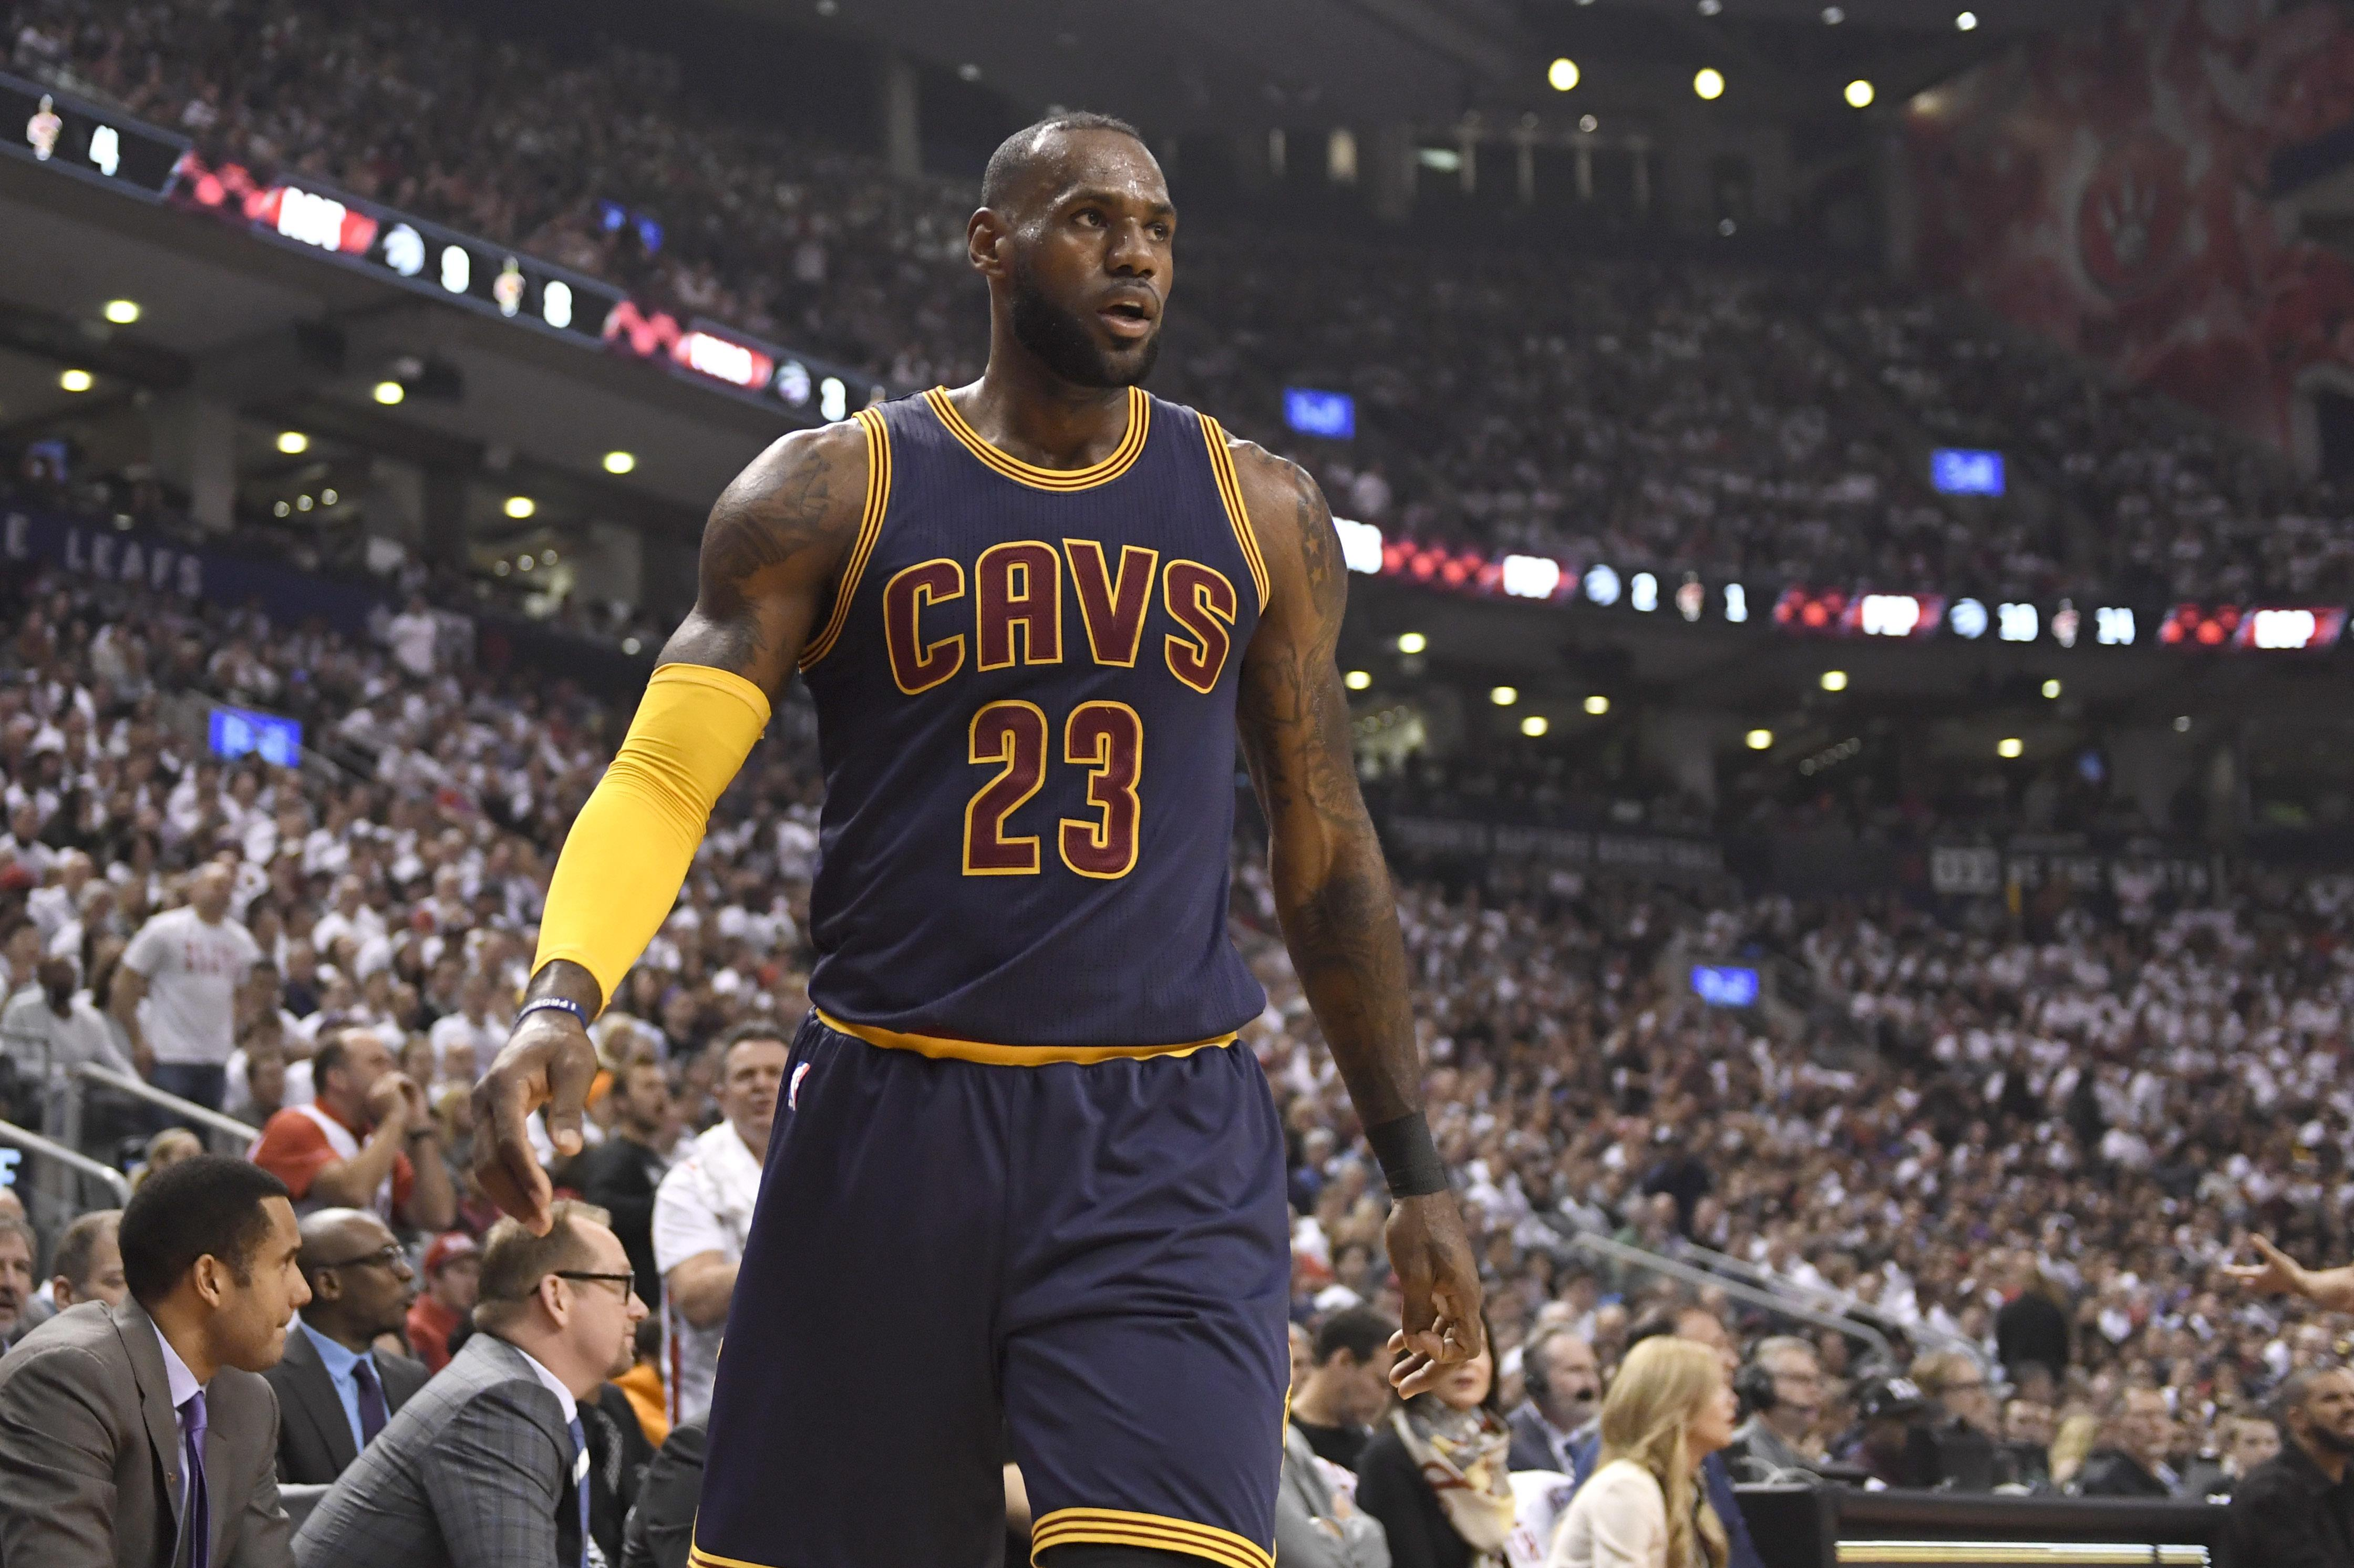 Cleveland Cavaliers forward LeBron James (23) walks downcourt during the  first half of Game 637303d08